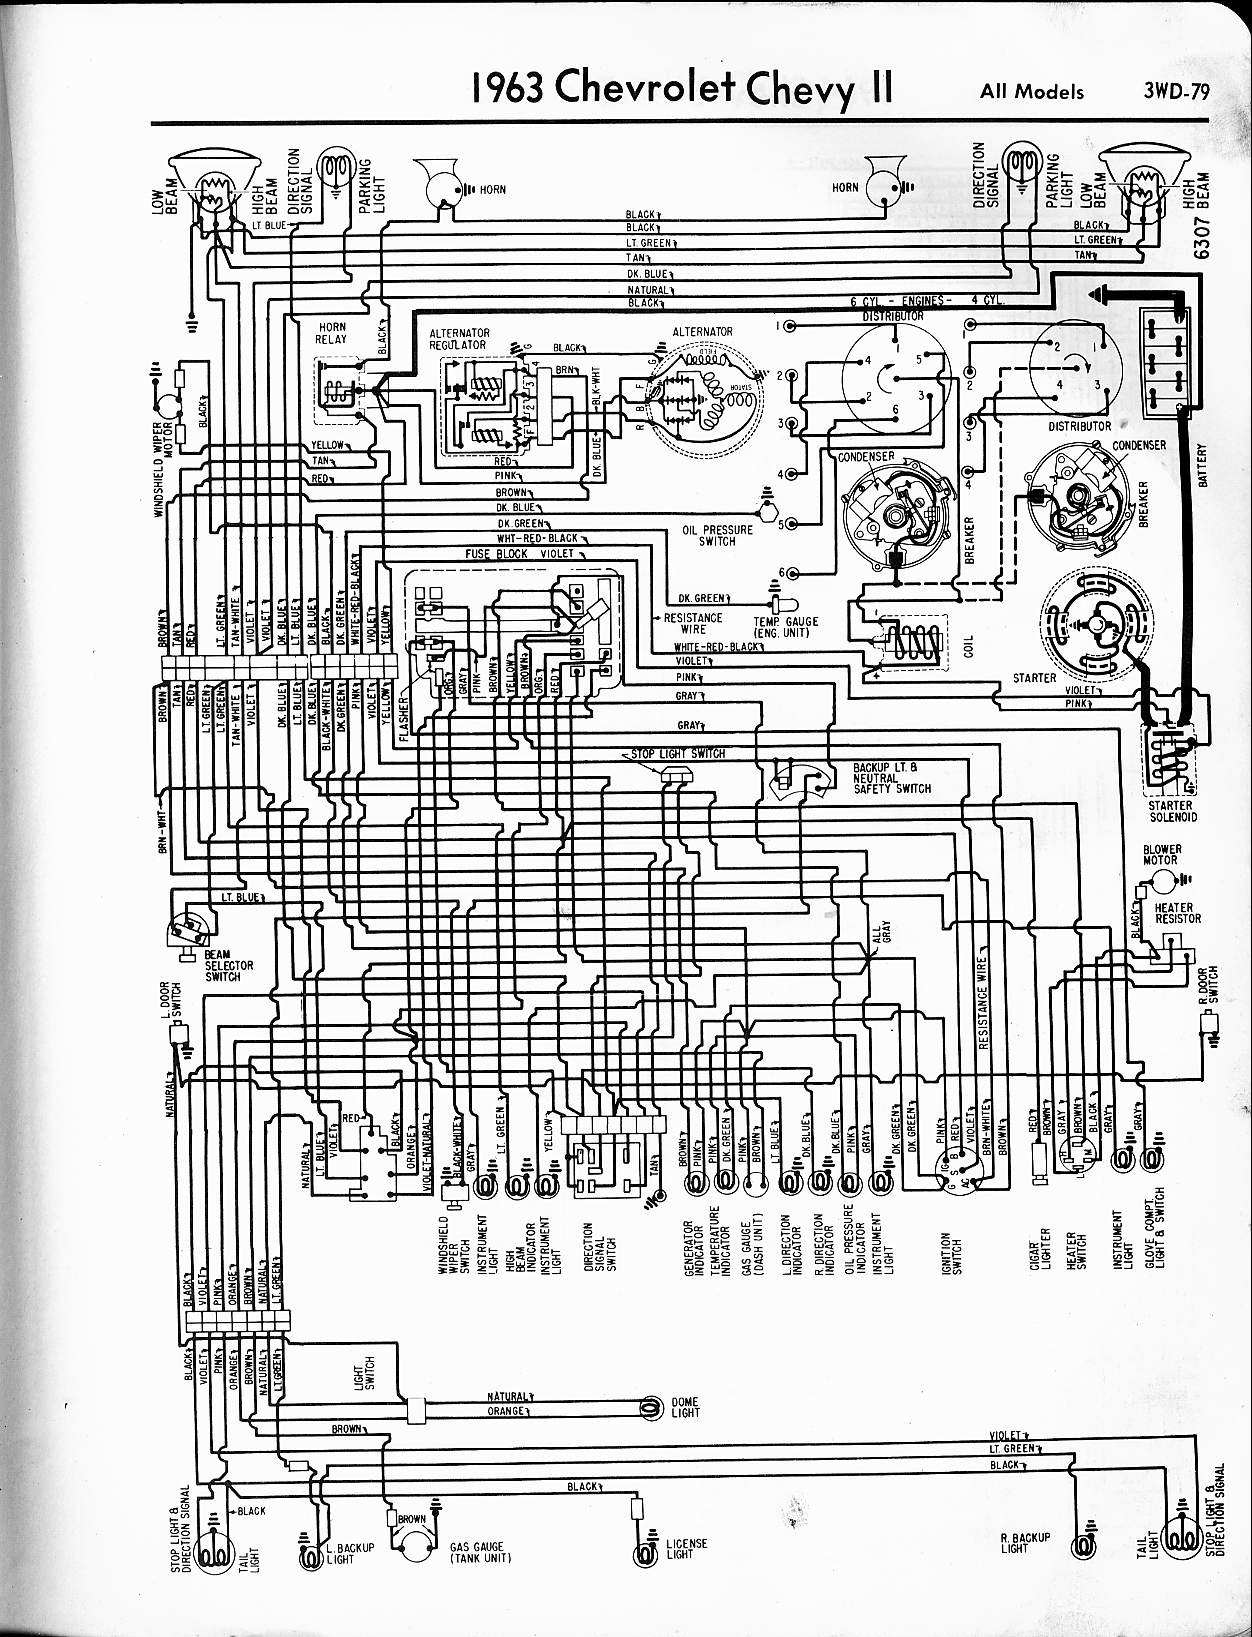 MWireChev63_3WD 079 57 65 chevy wiring diagrams 1966 corvette wiring diagram pdf at mifinder.co